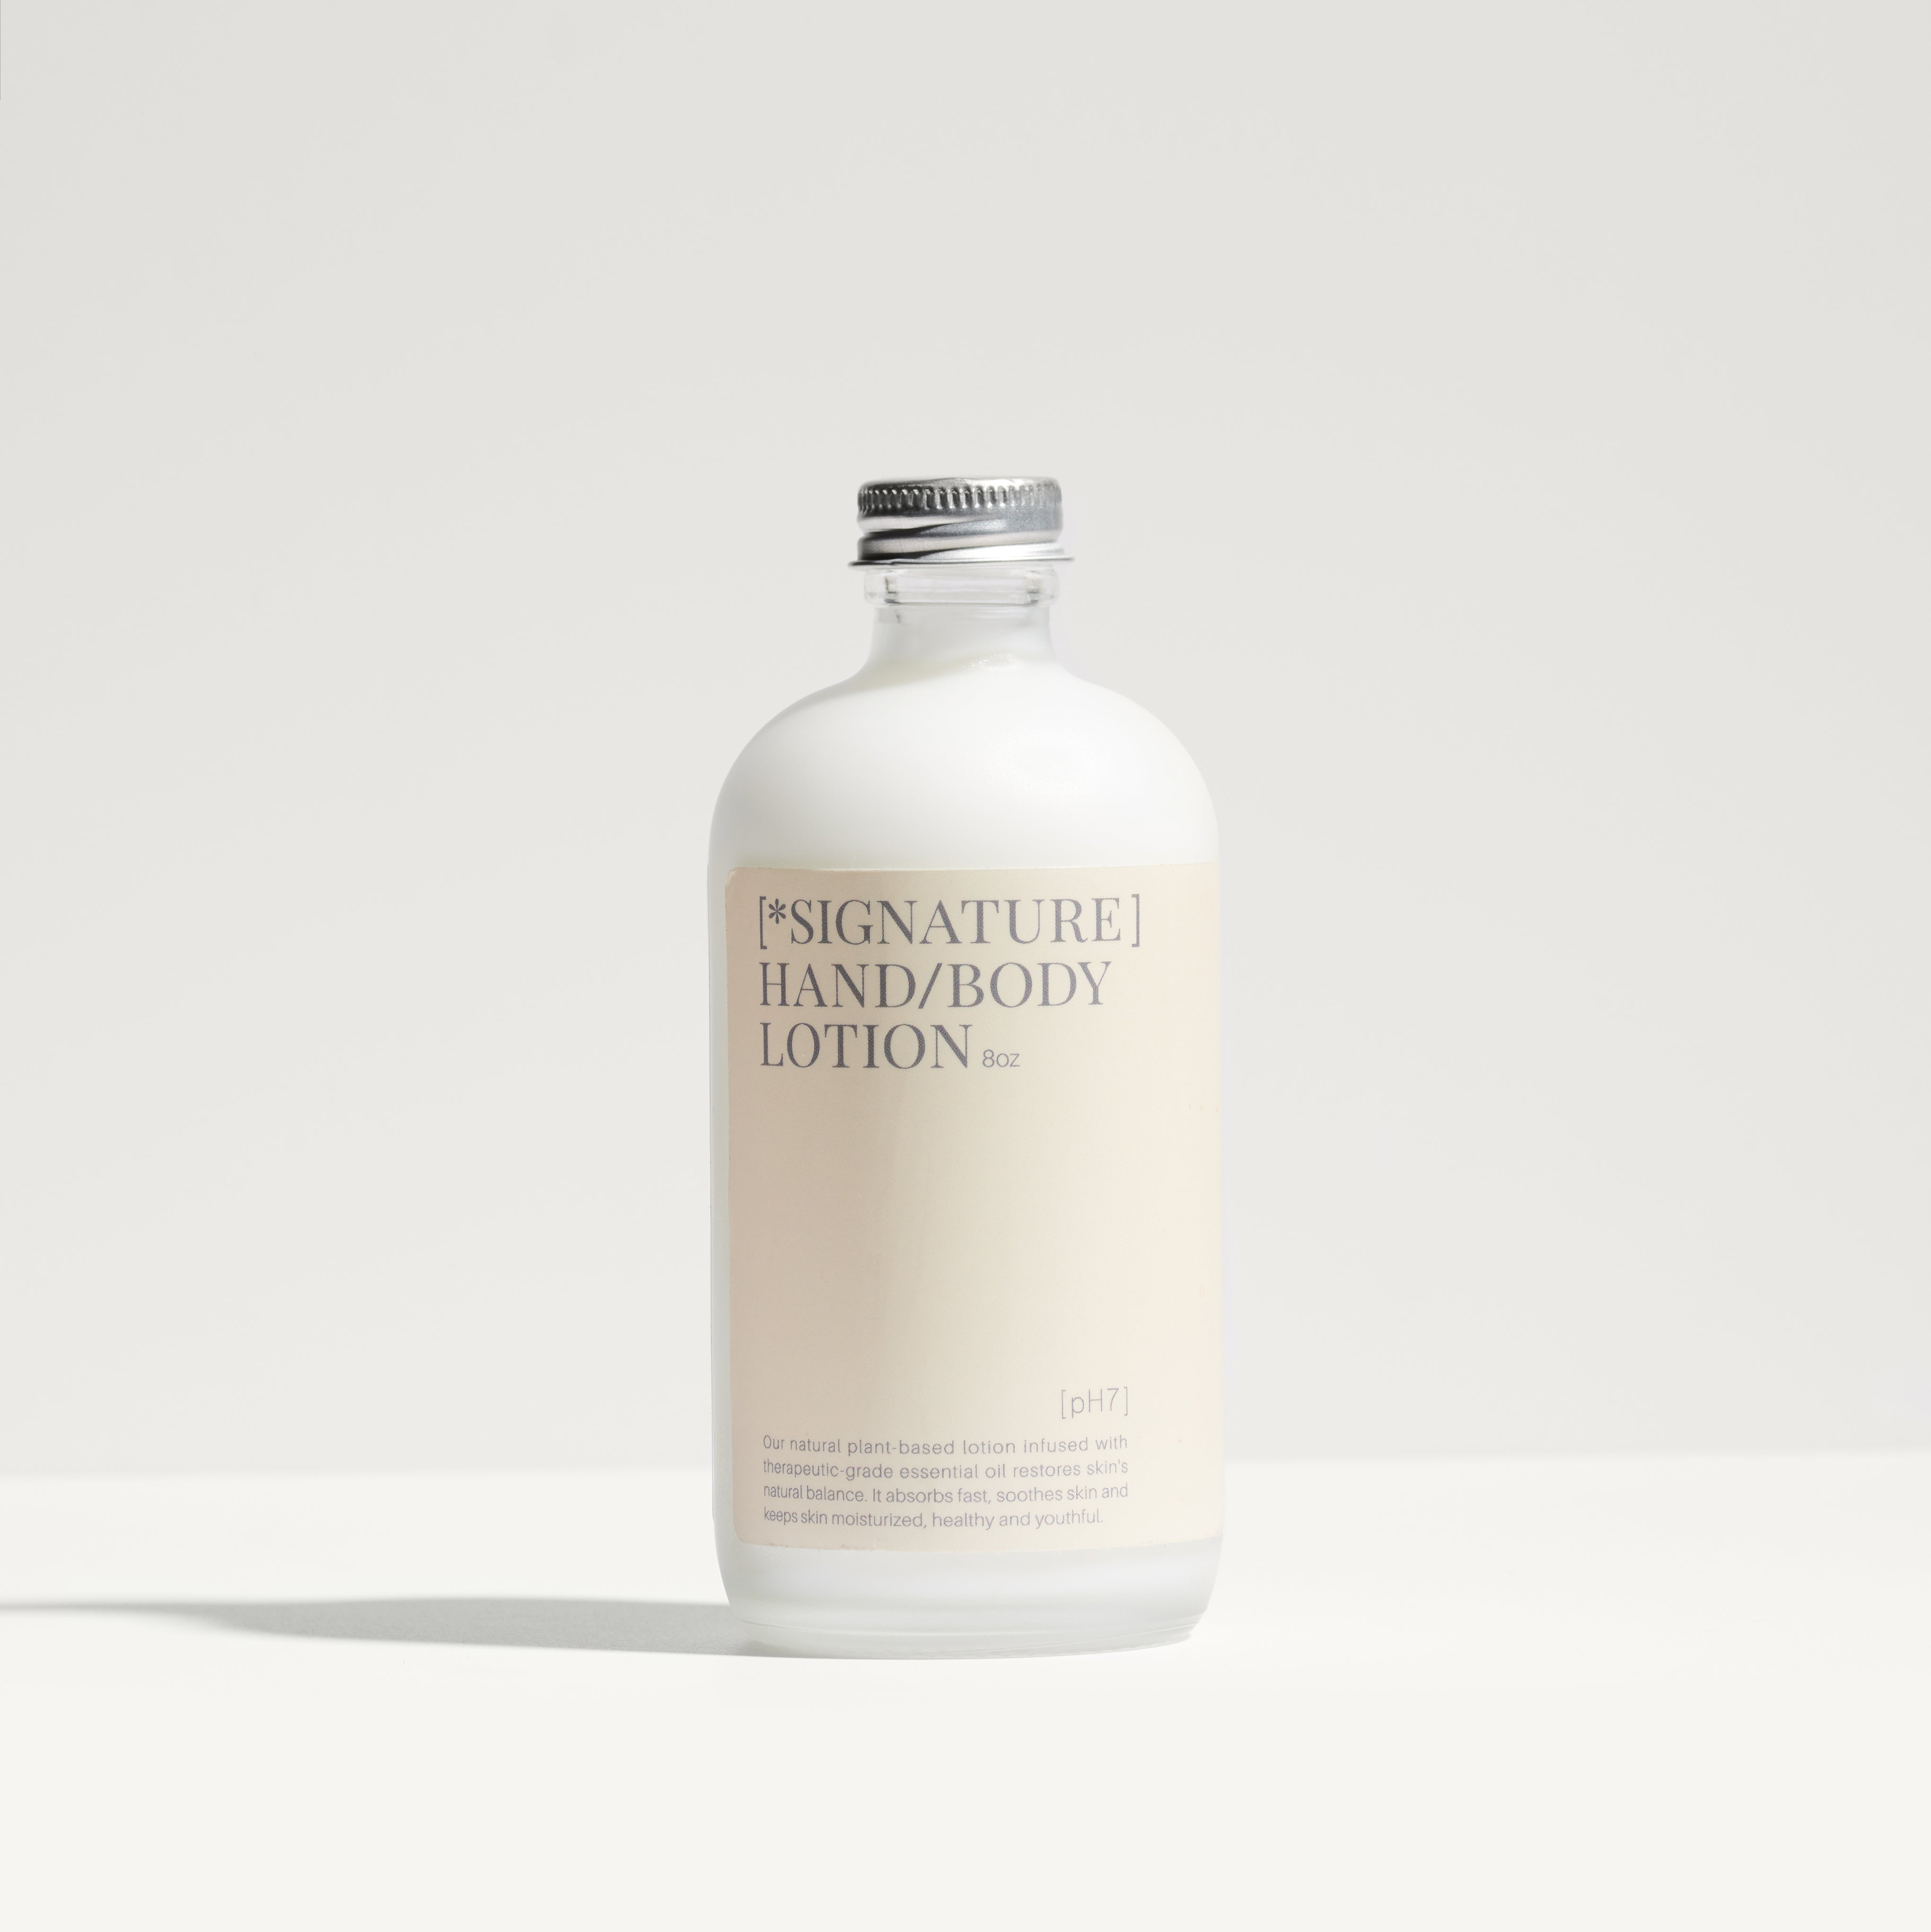 Signature Hand/ Body Lotion